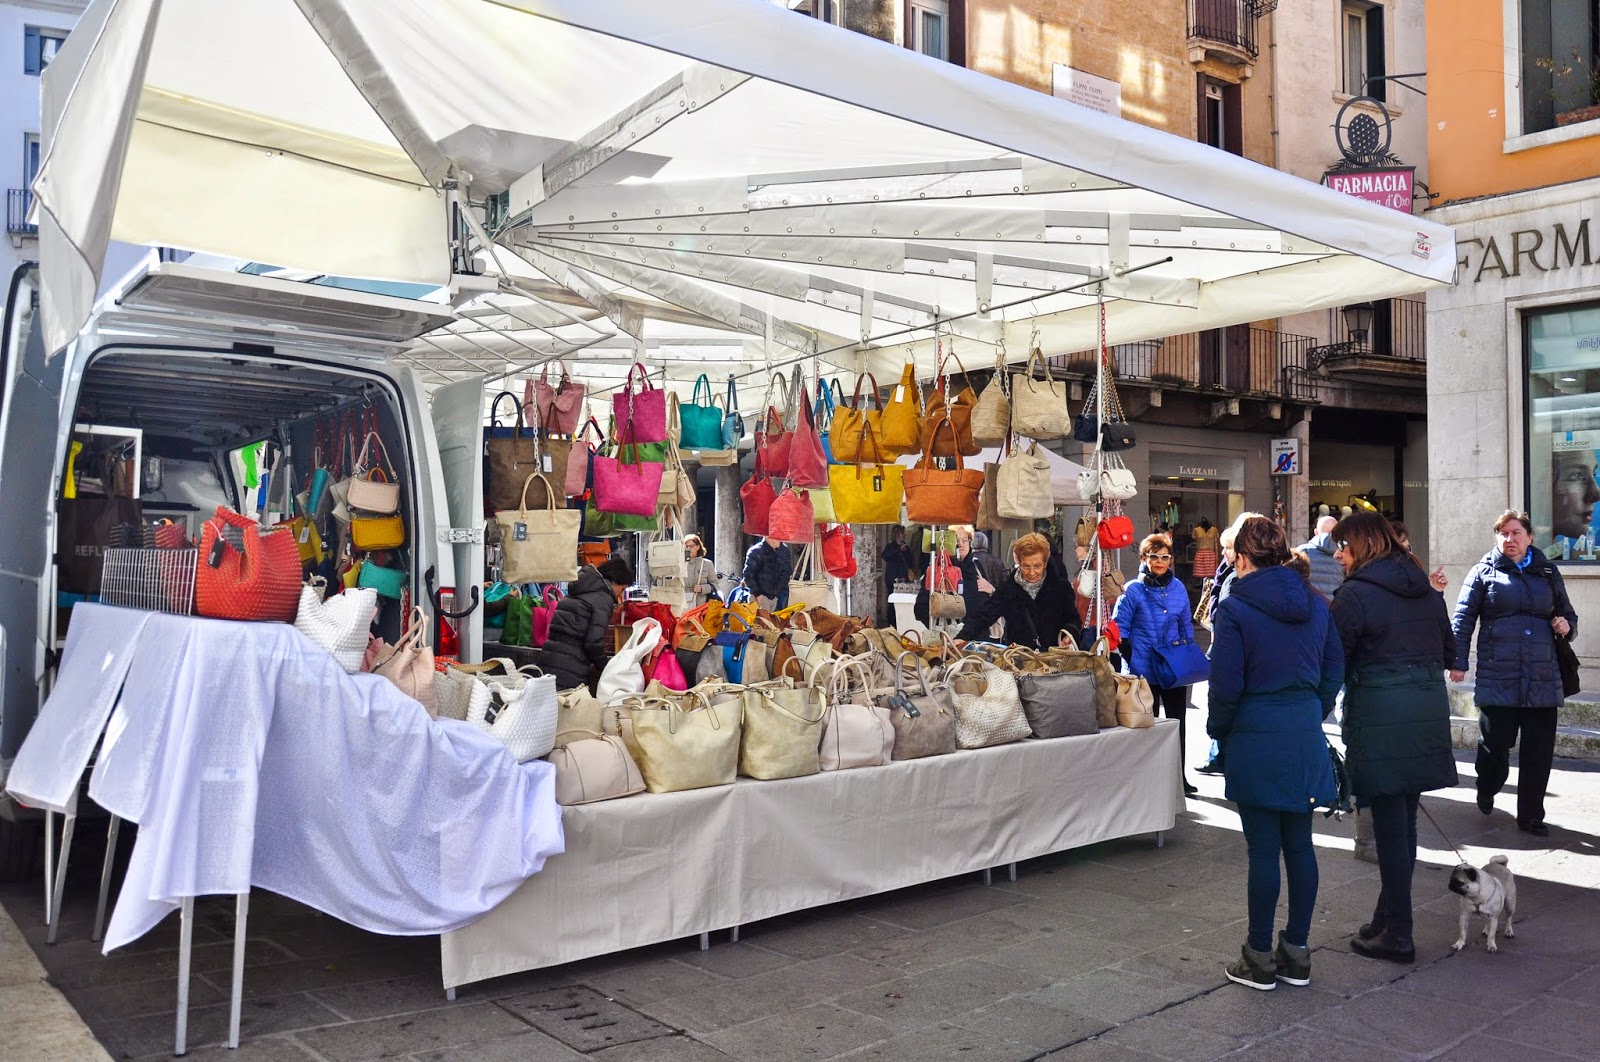 The bag stall at the Thursday market in Vicenza, Italy